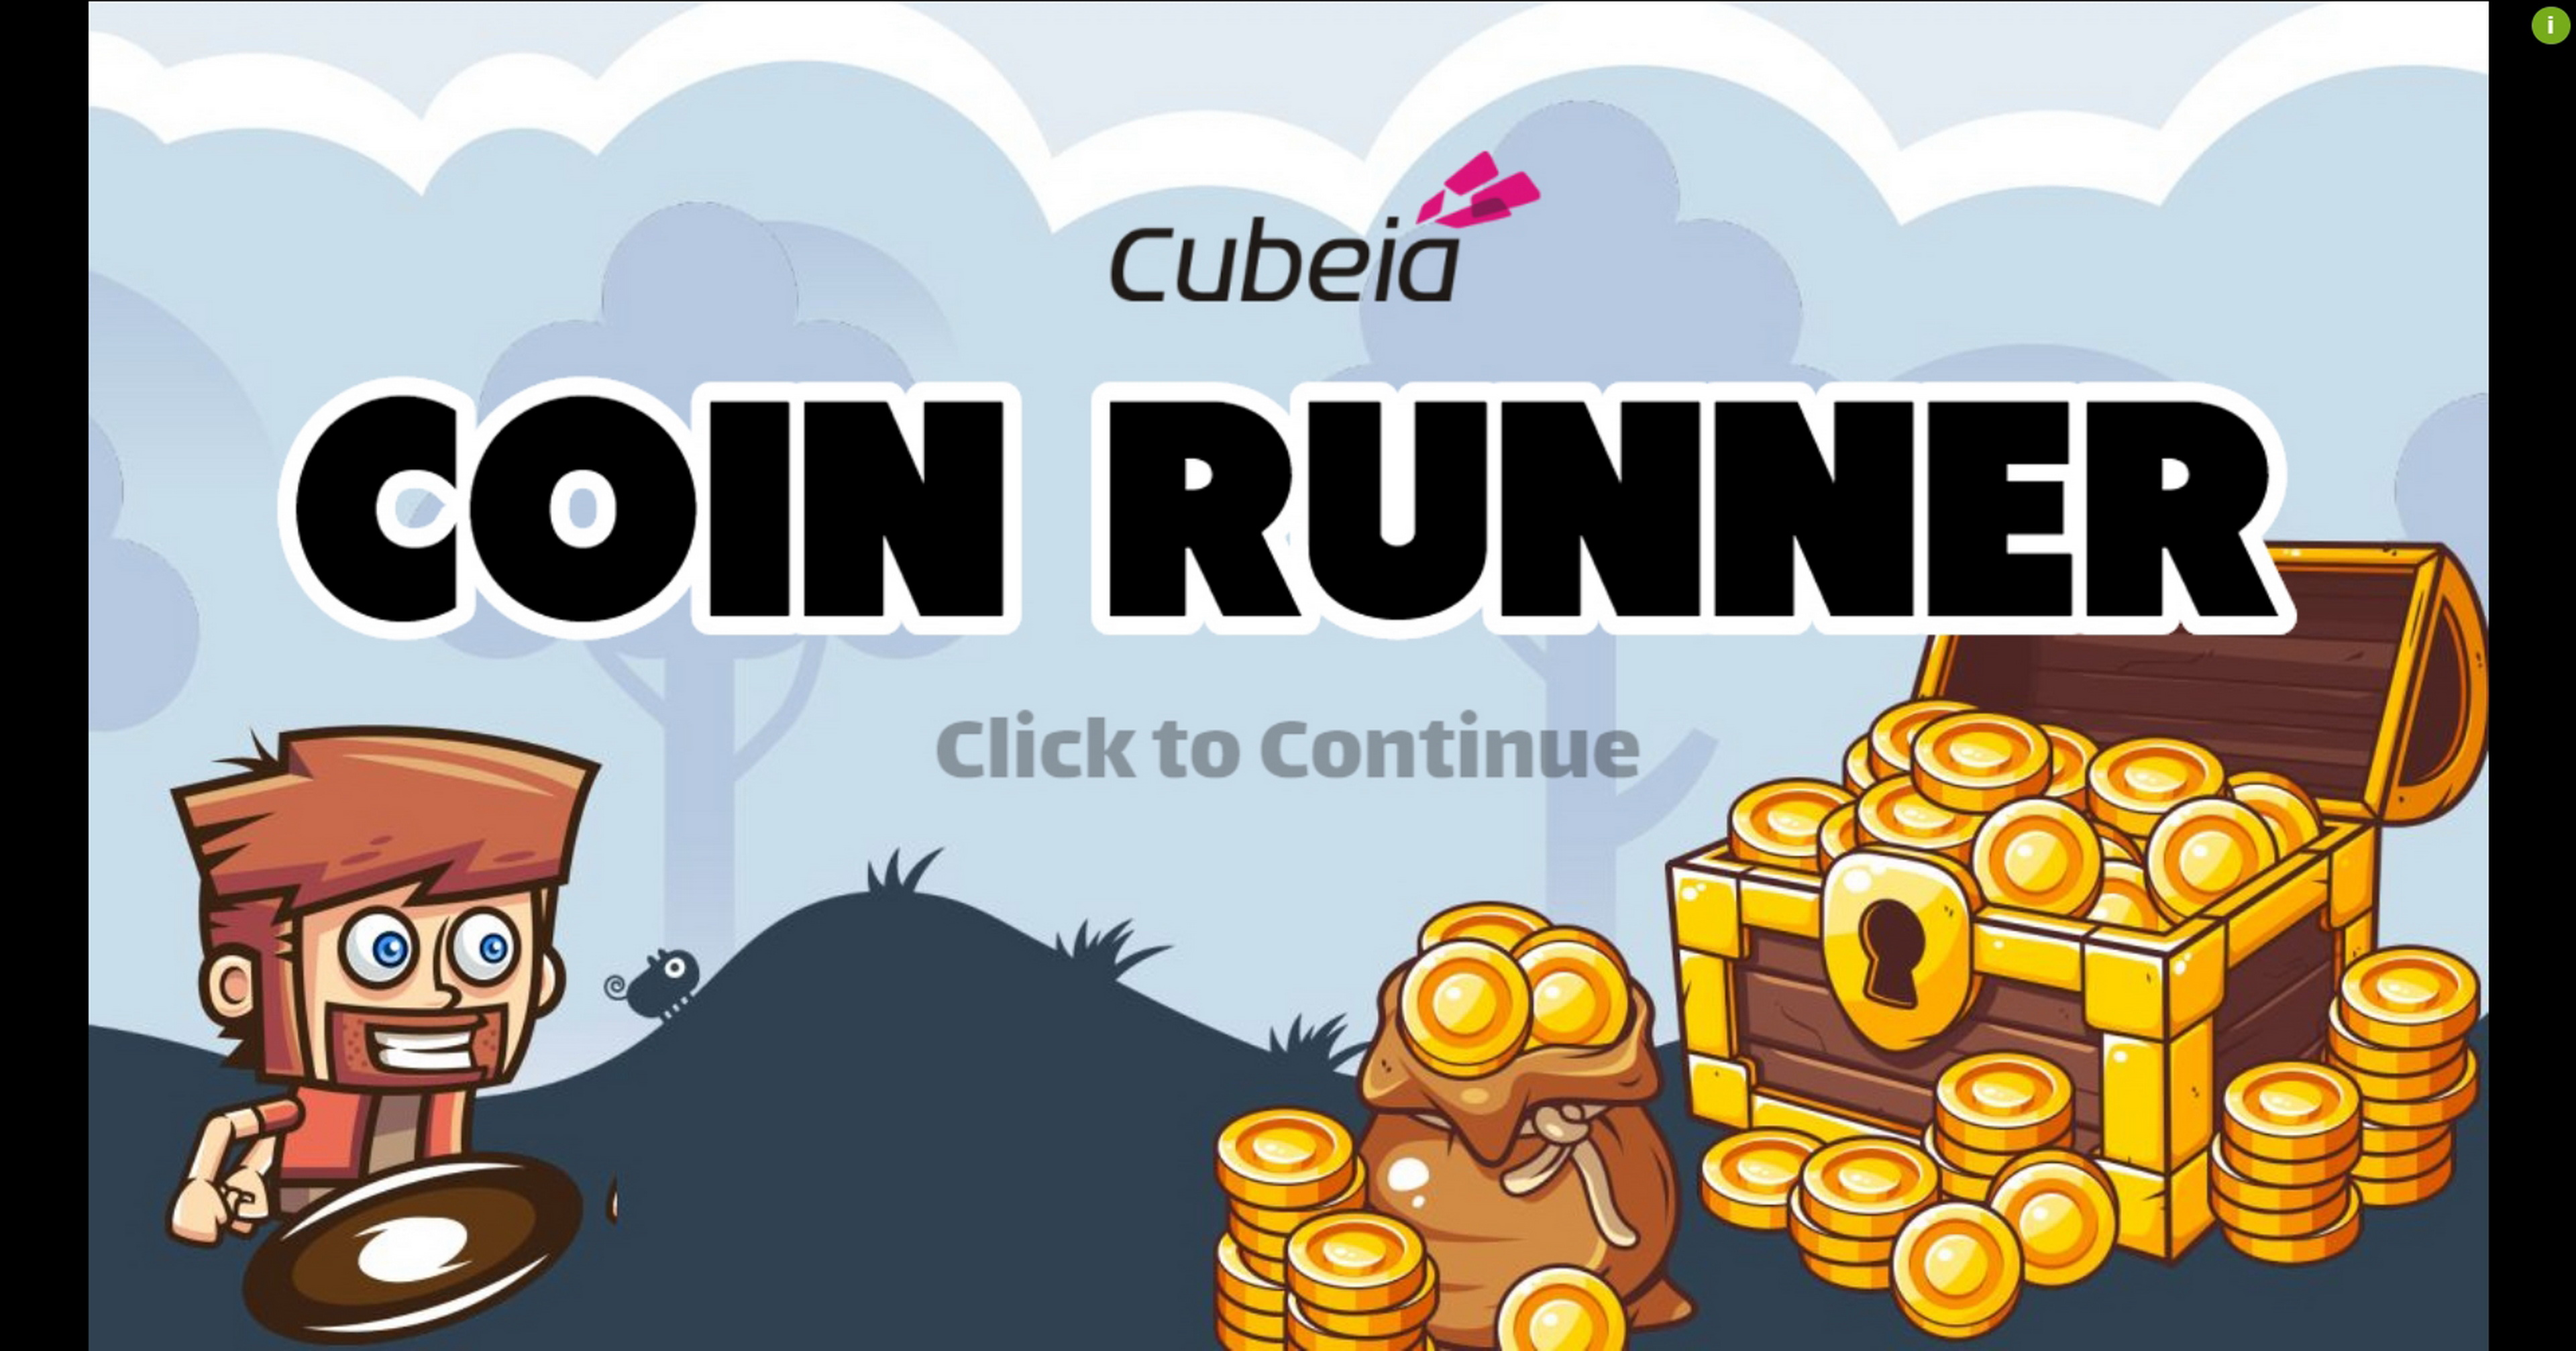 Play Coin Runner Free Casino Slot Game by Cubeia